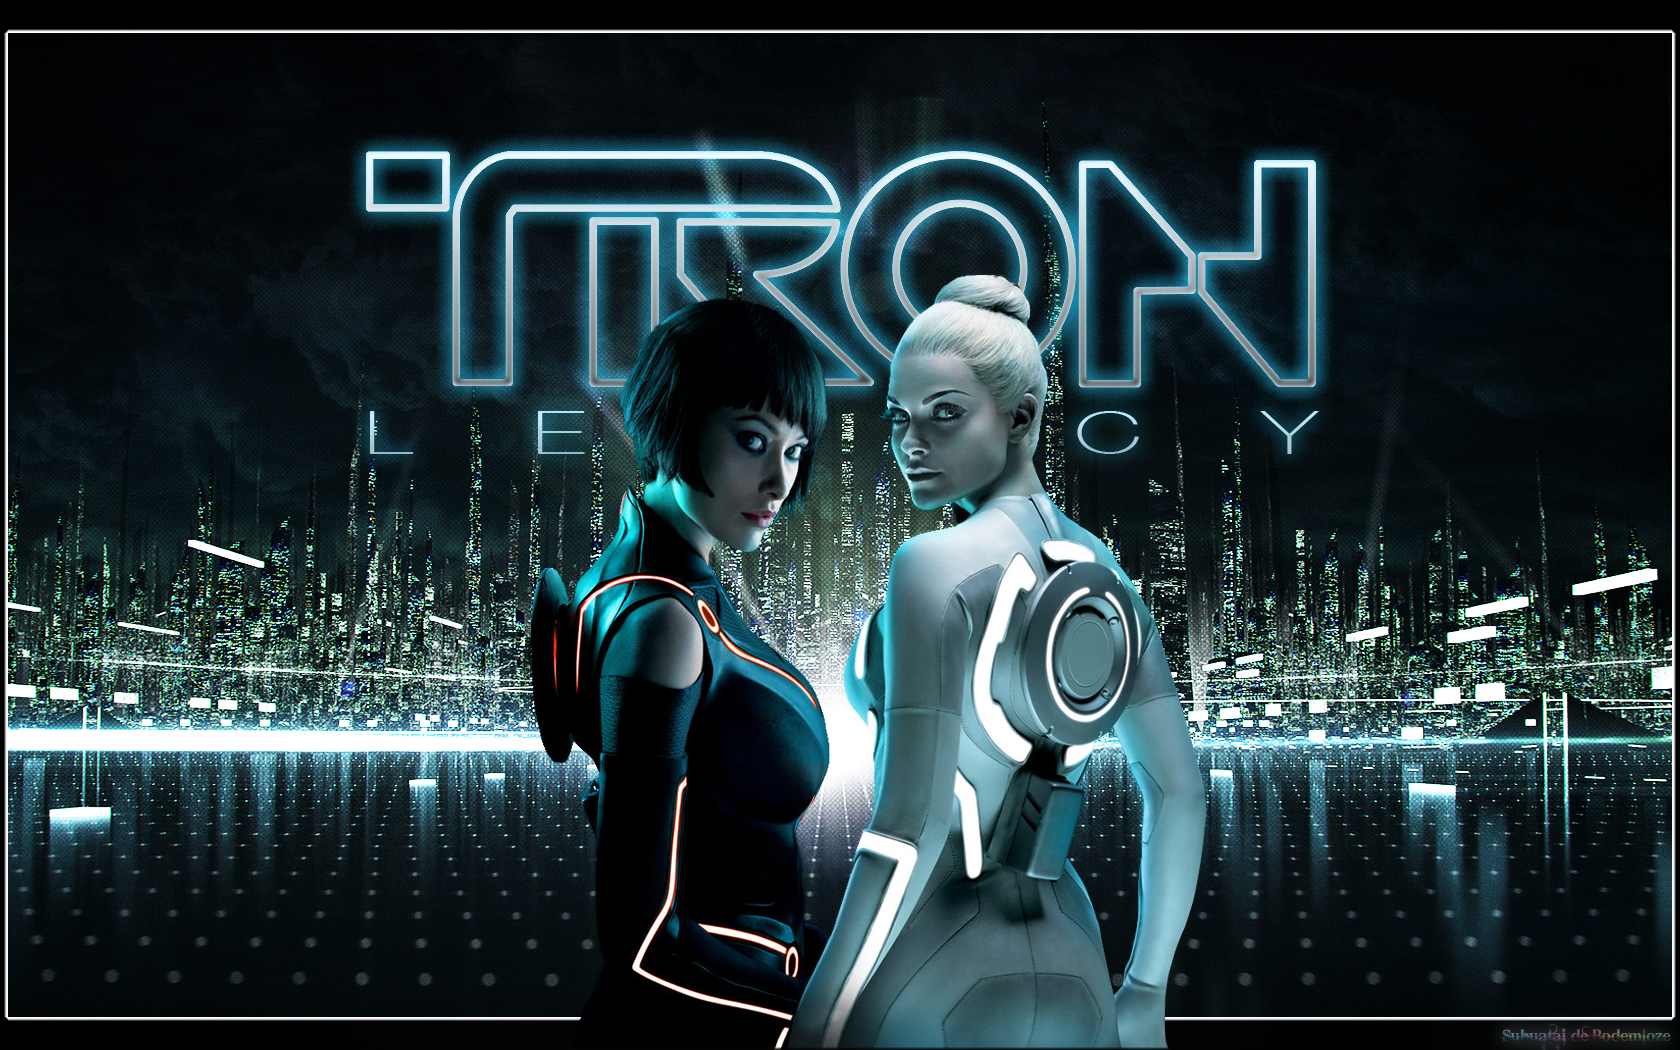 tron wallpaper hd style - photo #5